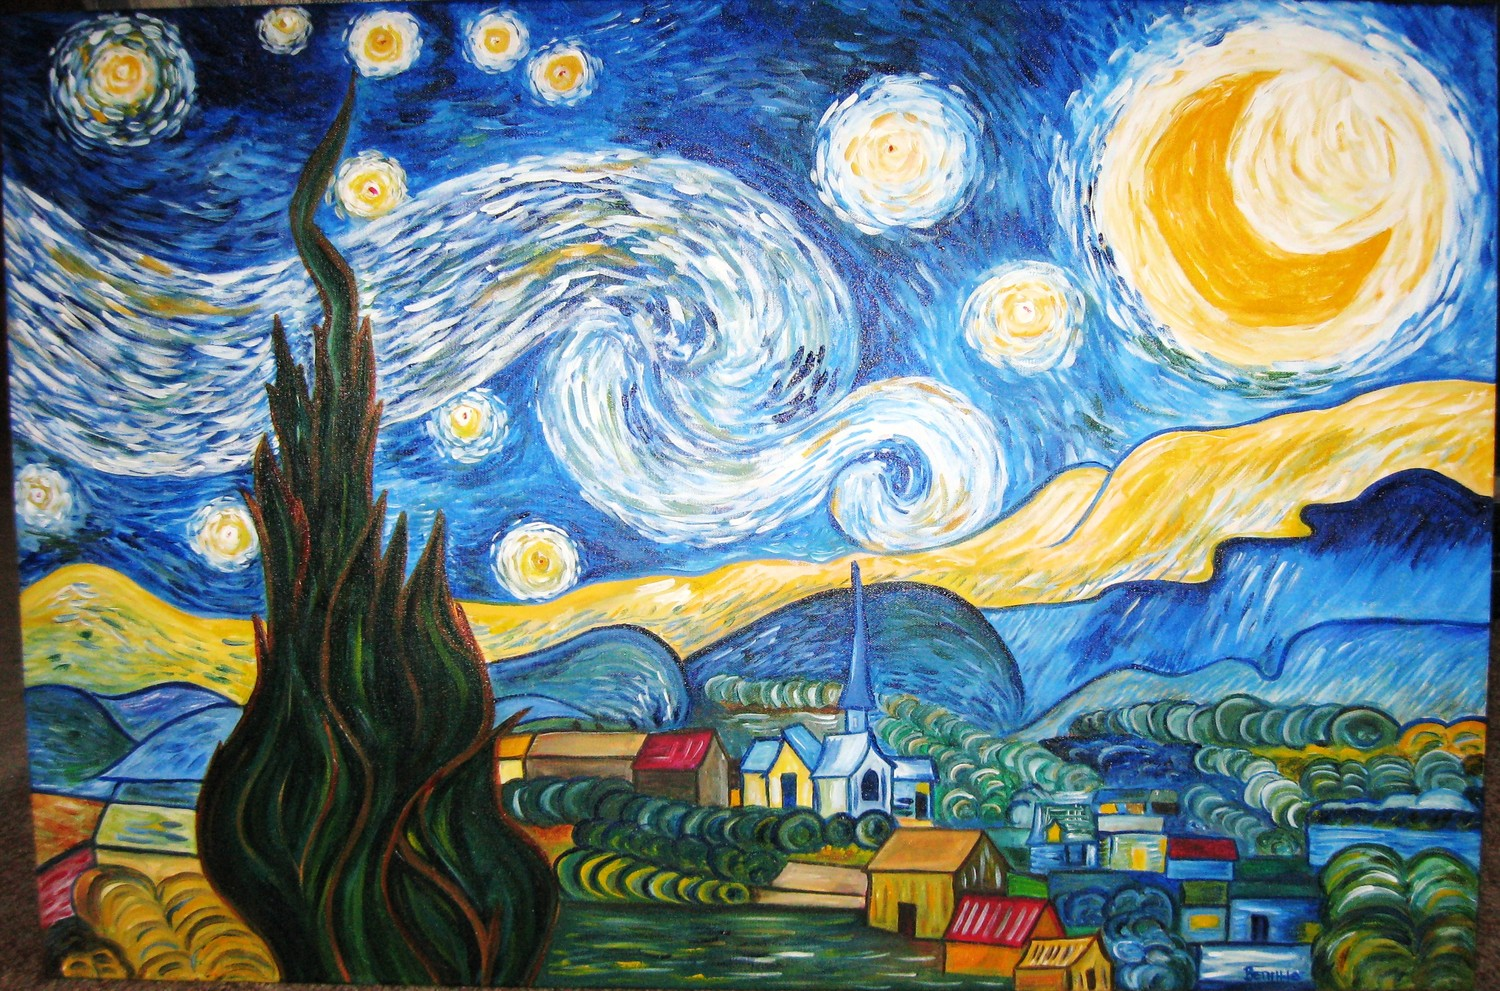 expressionism van goughs starry night essay Expressionism: van gough's starry night starry night expressionism was considered a movement in fine art starry night, van gogh essay.